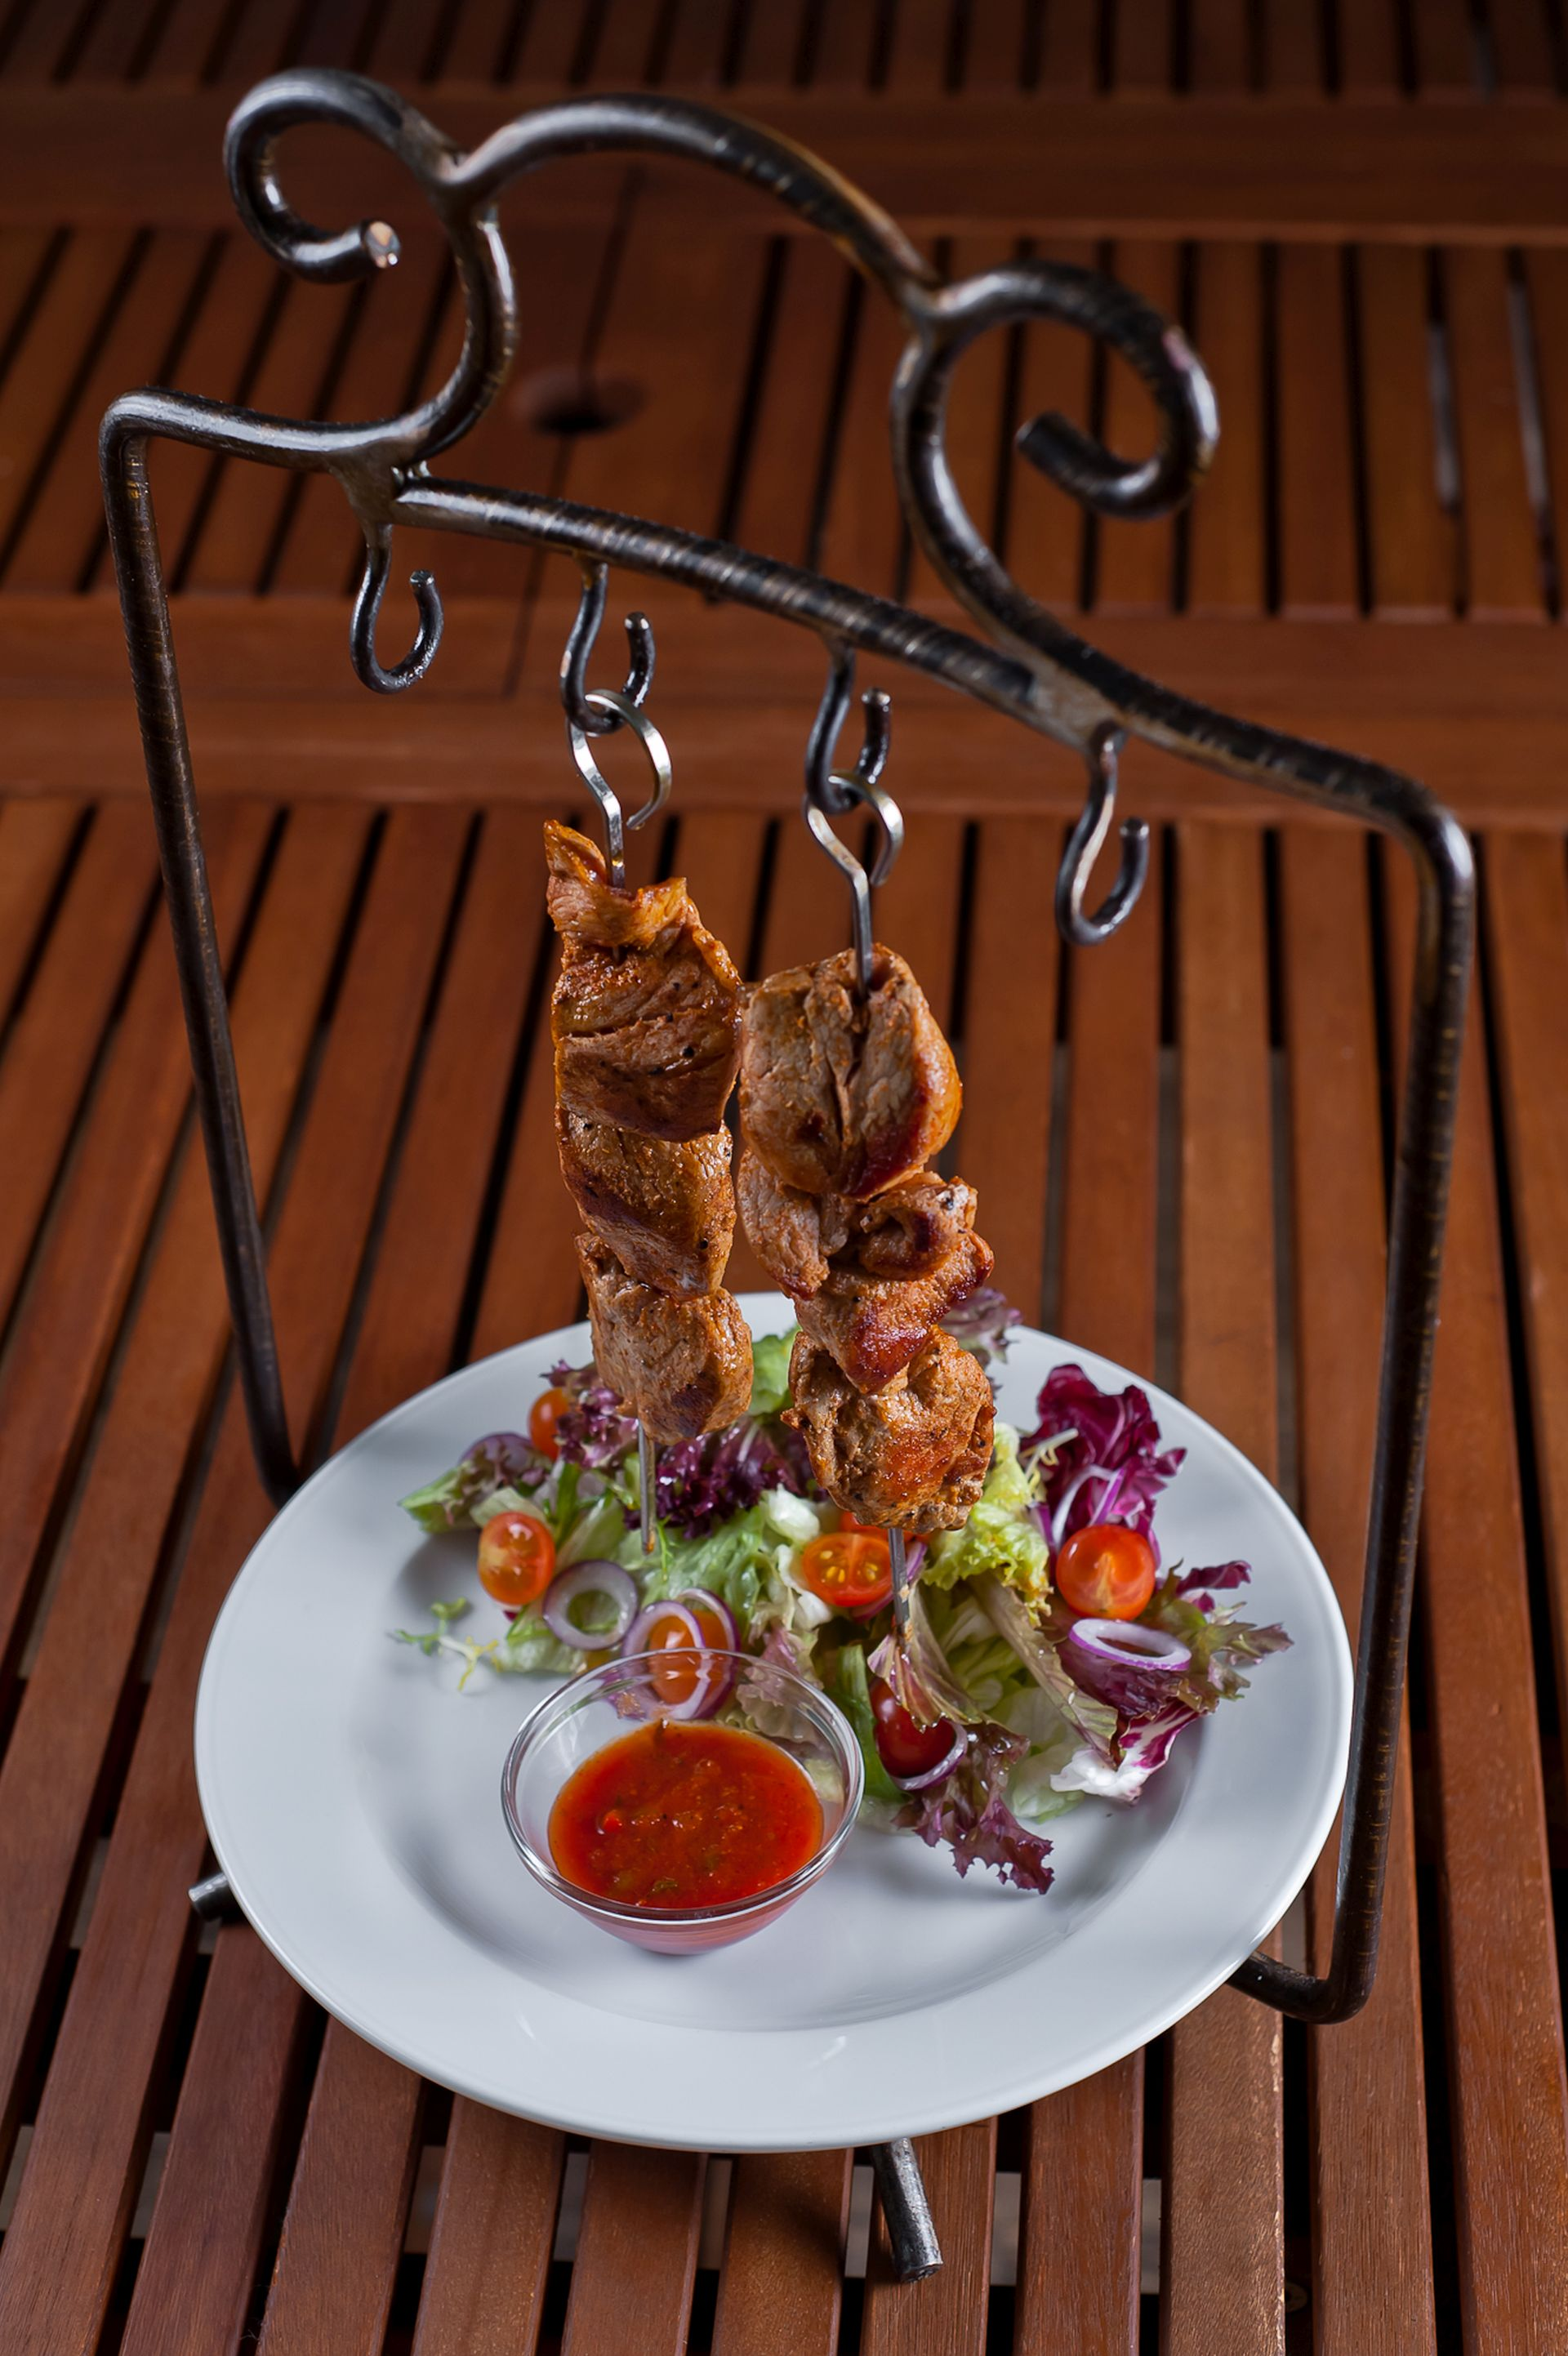 Skewers with chicken / Skewers with pork